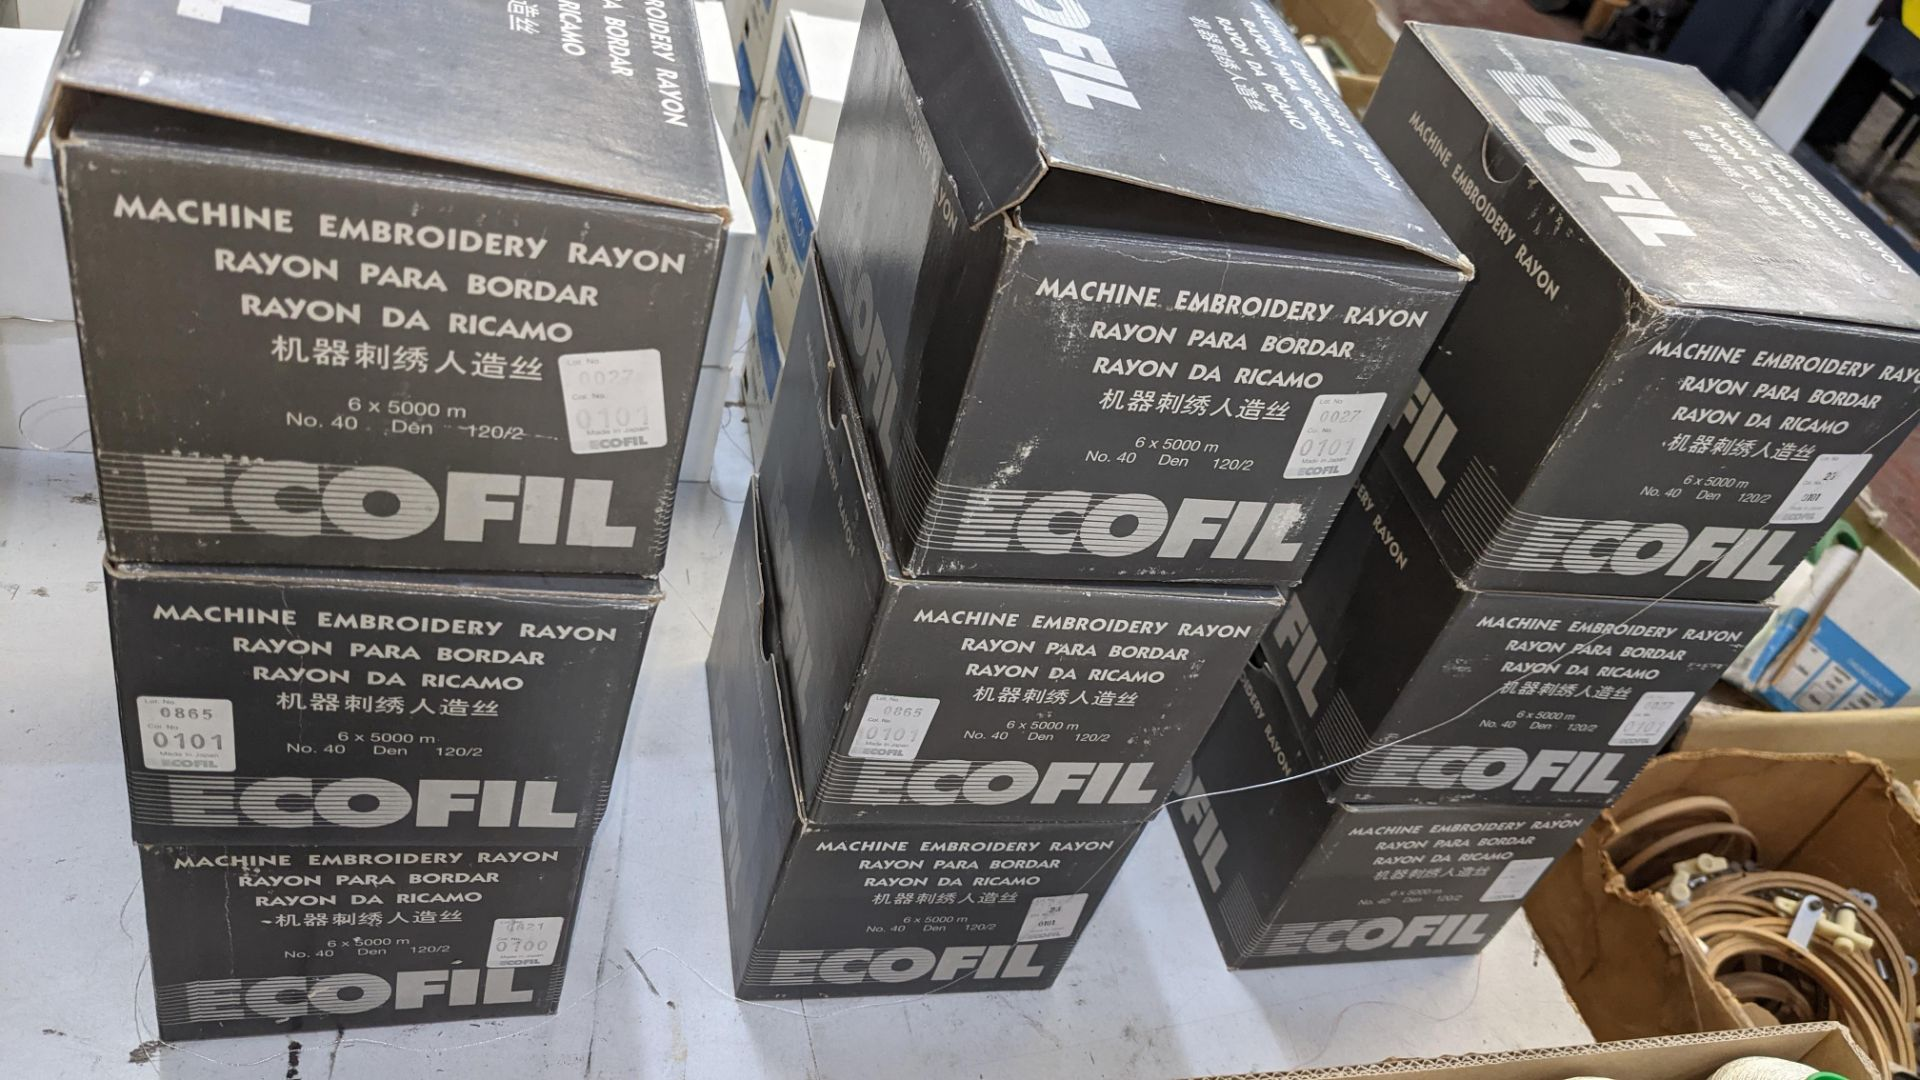 12 boxes of Ecofil rayon machine embroidery thread, all in white - Image 4 of 8